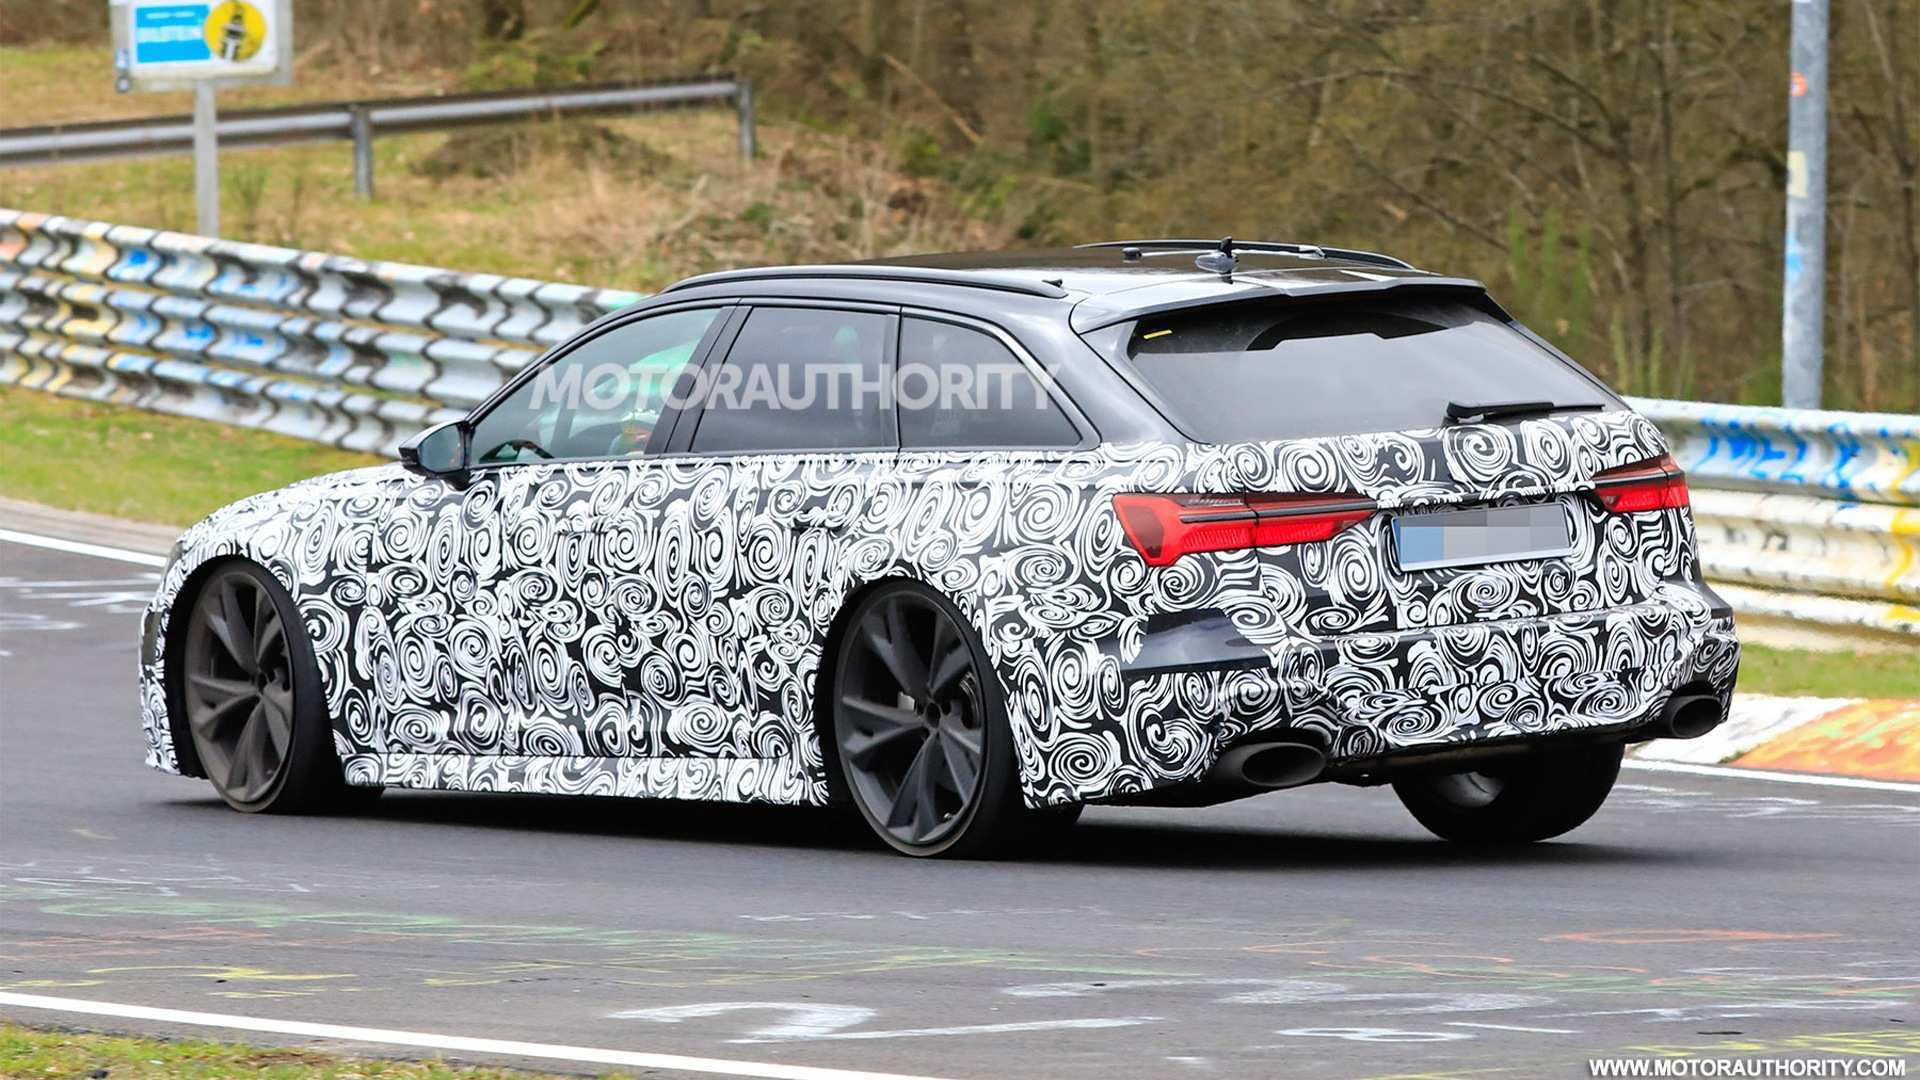 15 New 2020 Audi Rs6 Price Design and Review